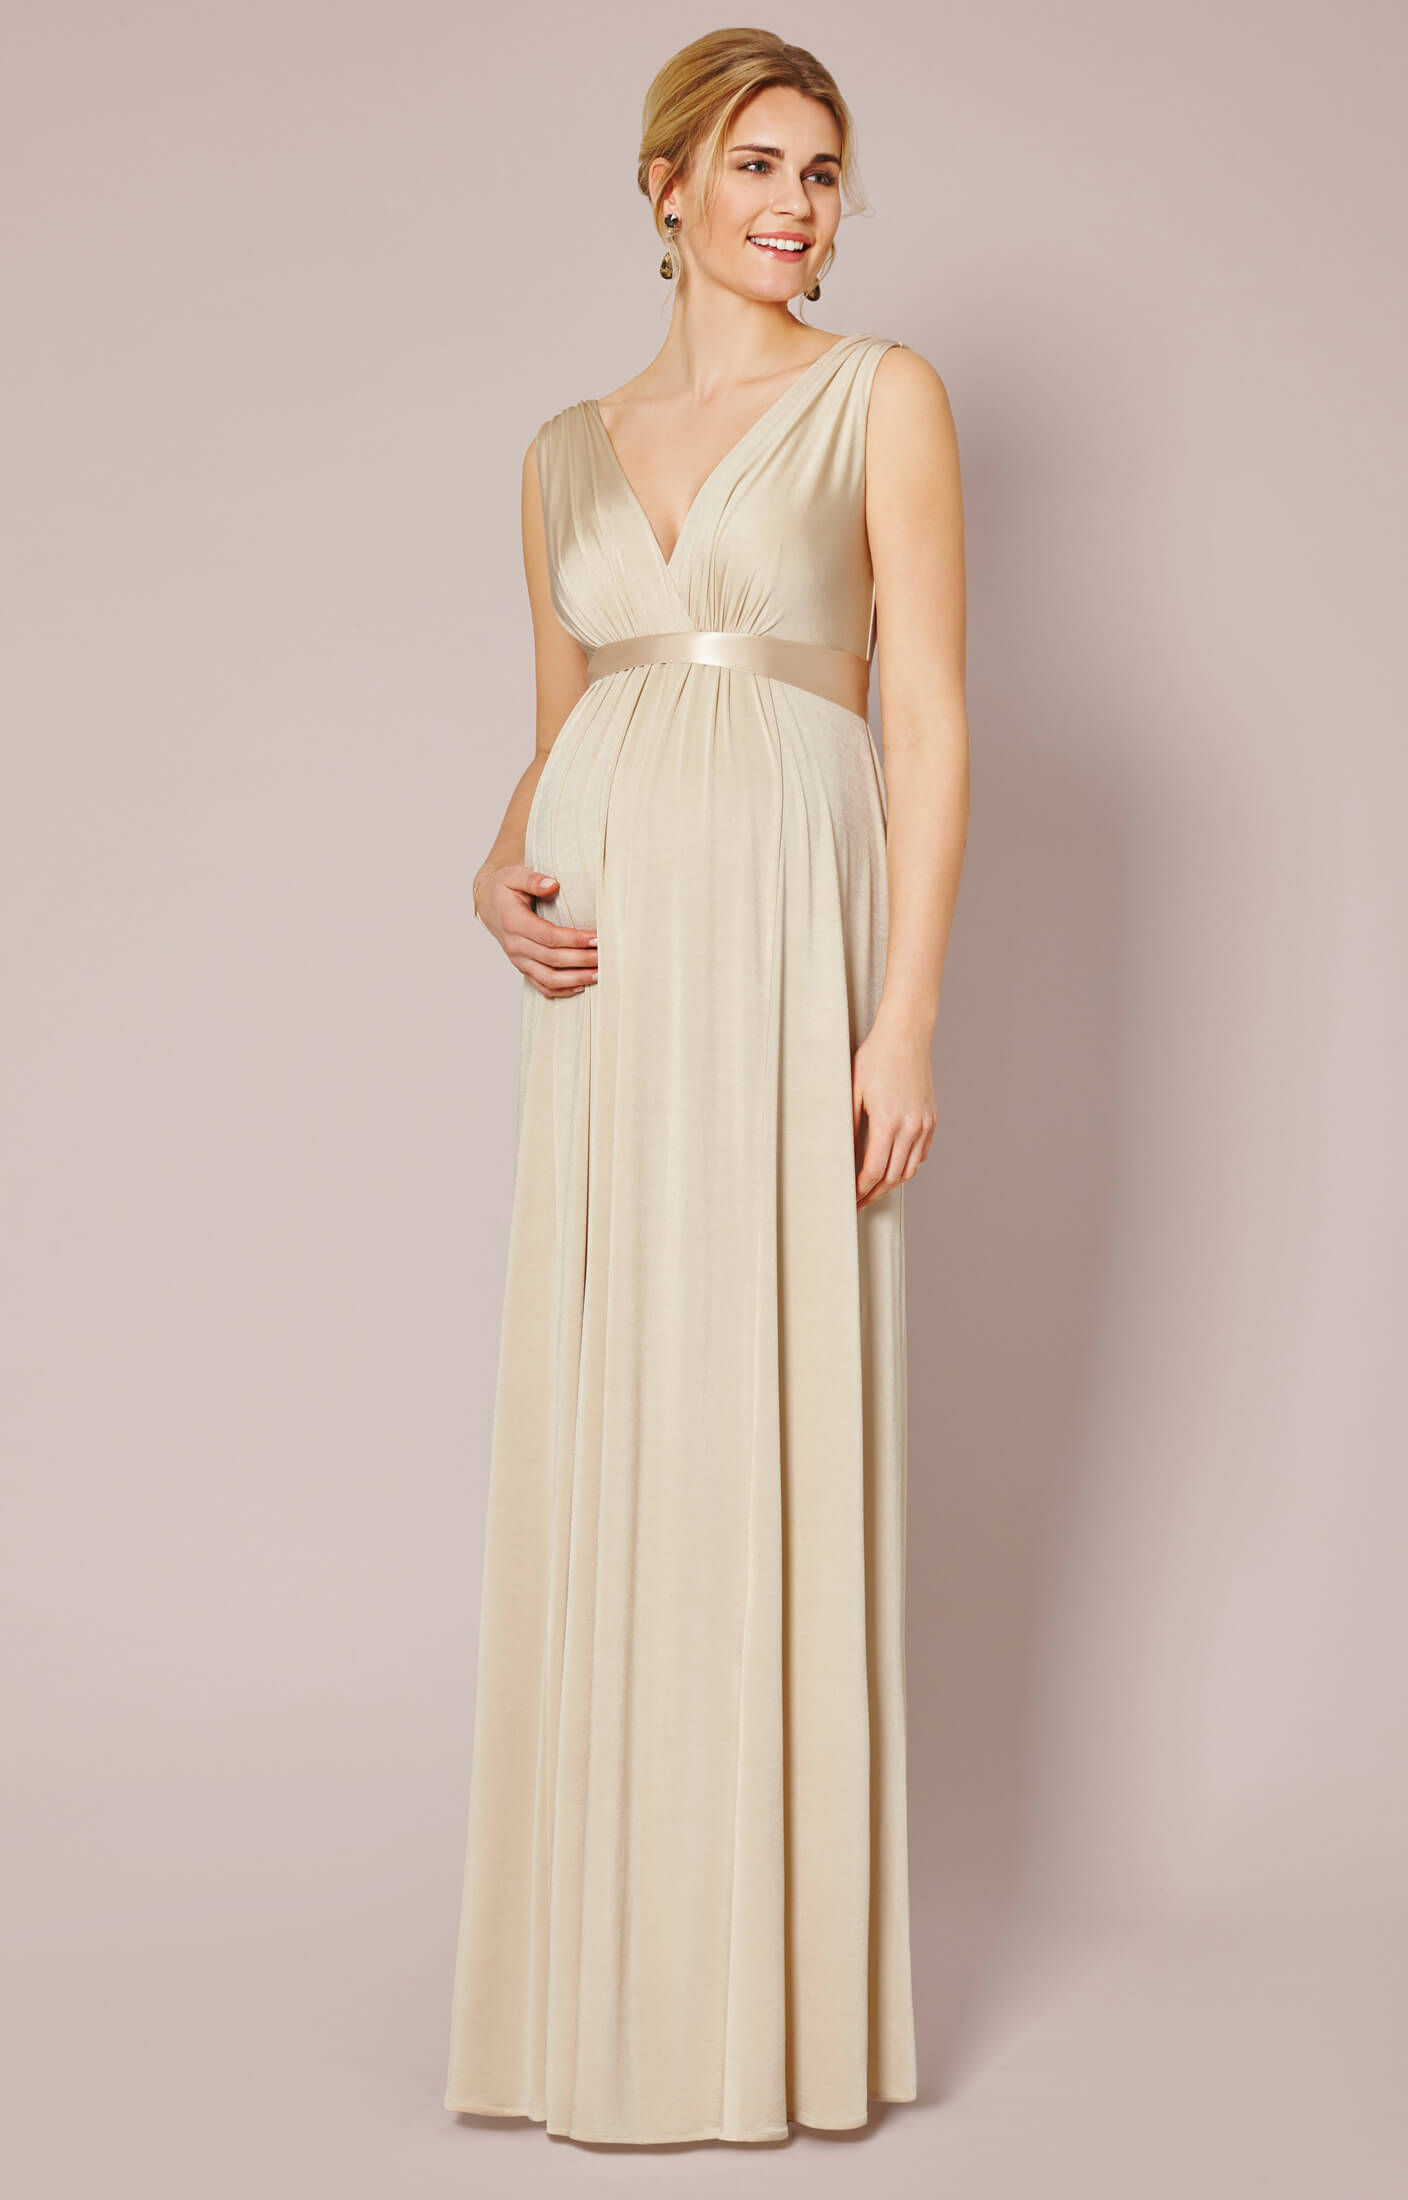 Anastasia maternity gown gold dust maternity wedding for Wedding guest pregnancy dresses